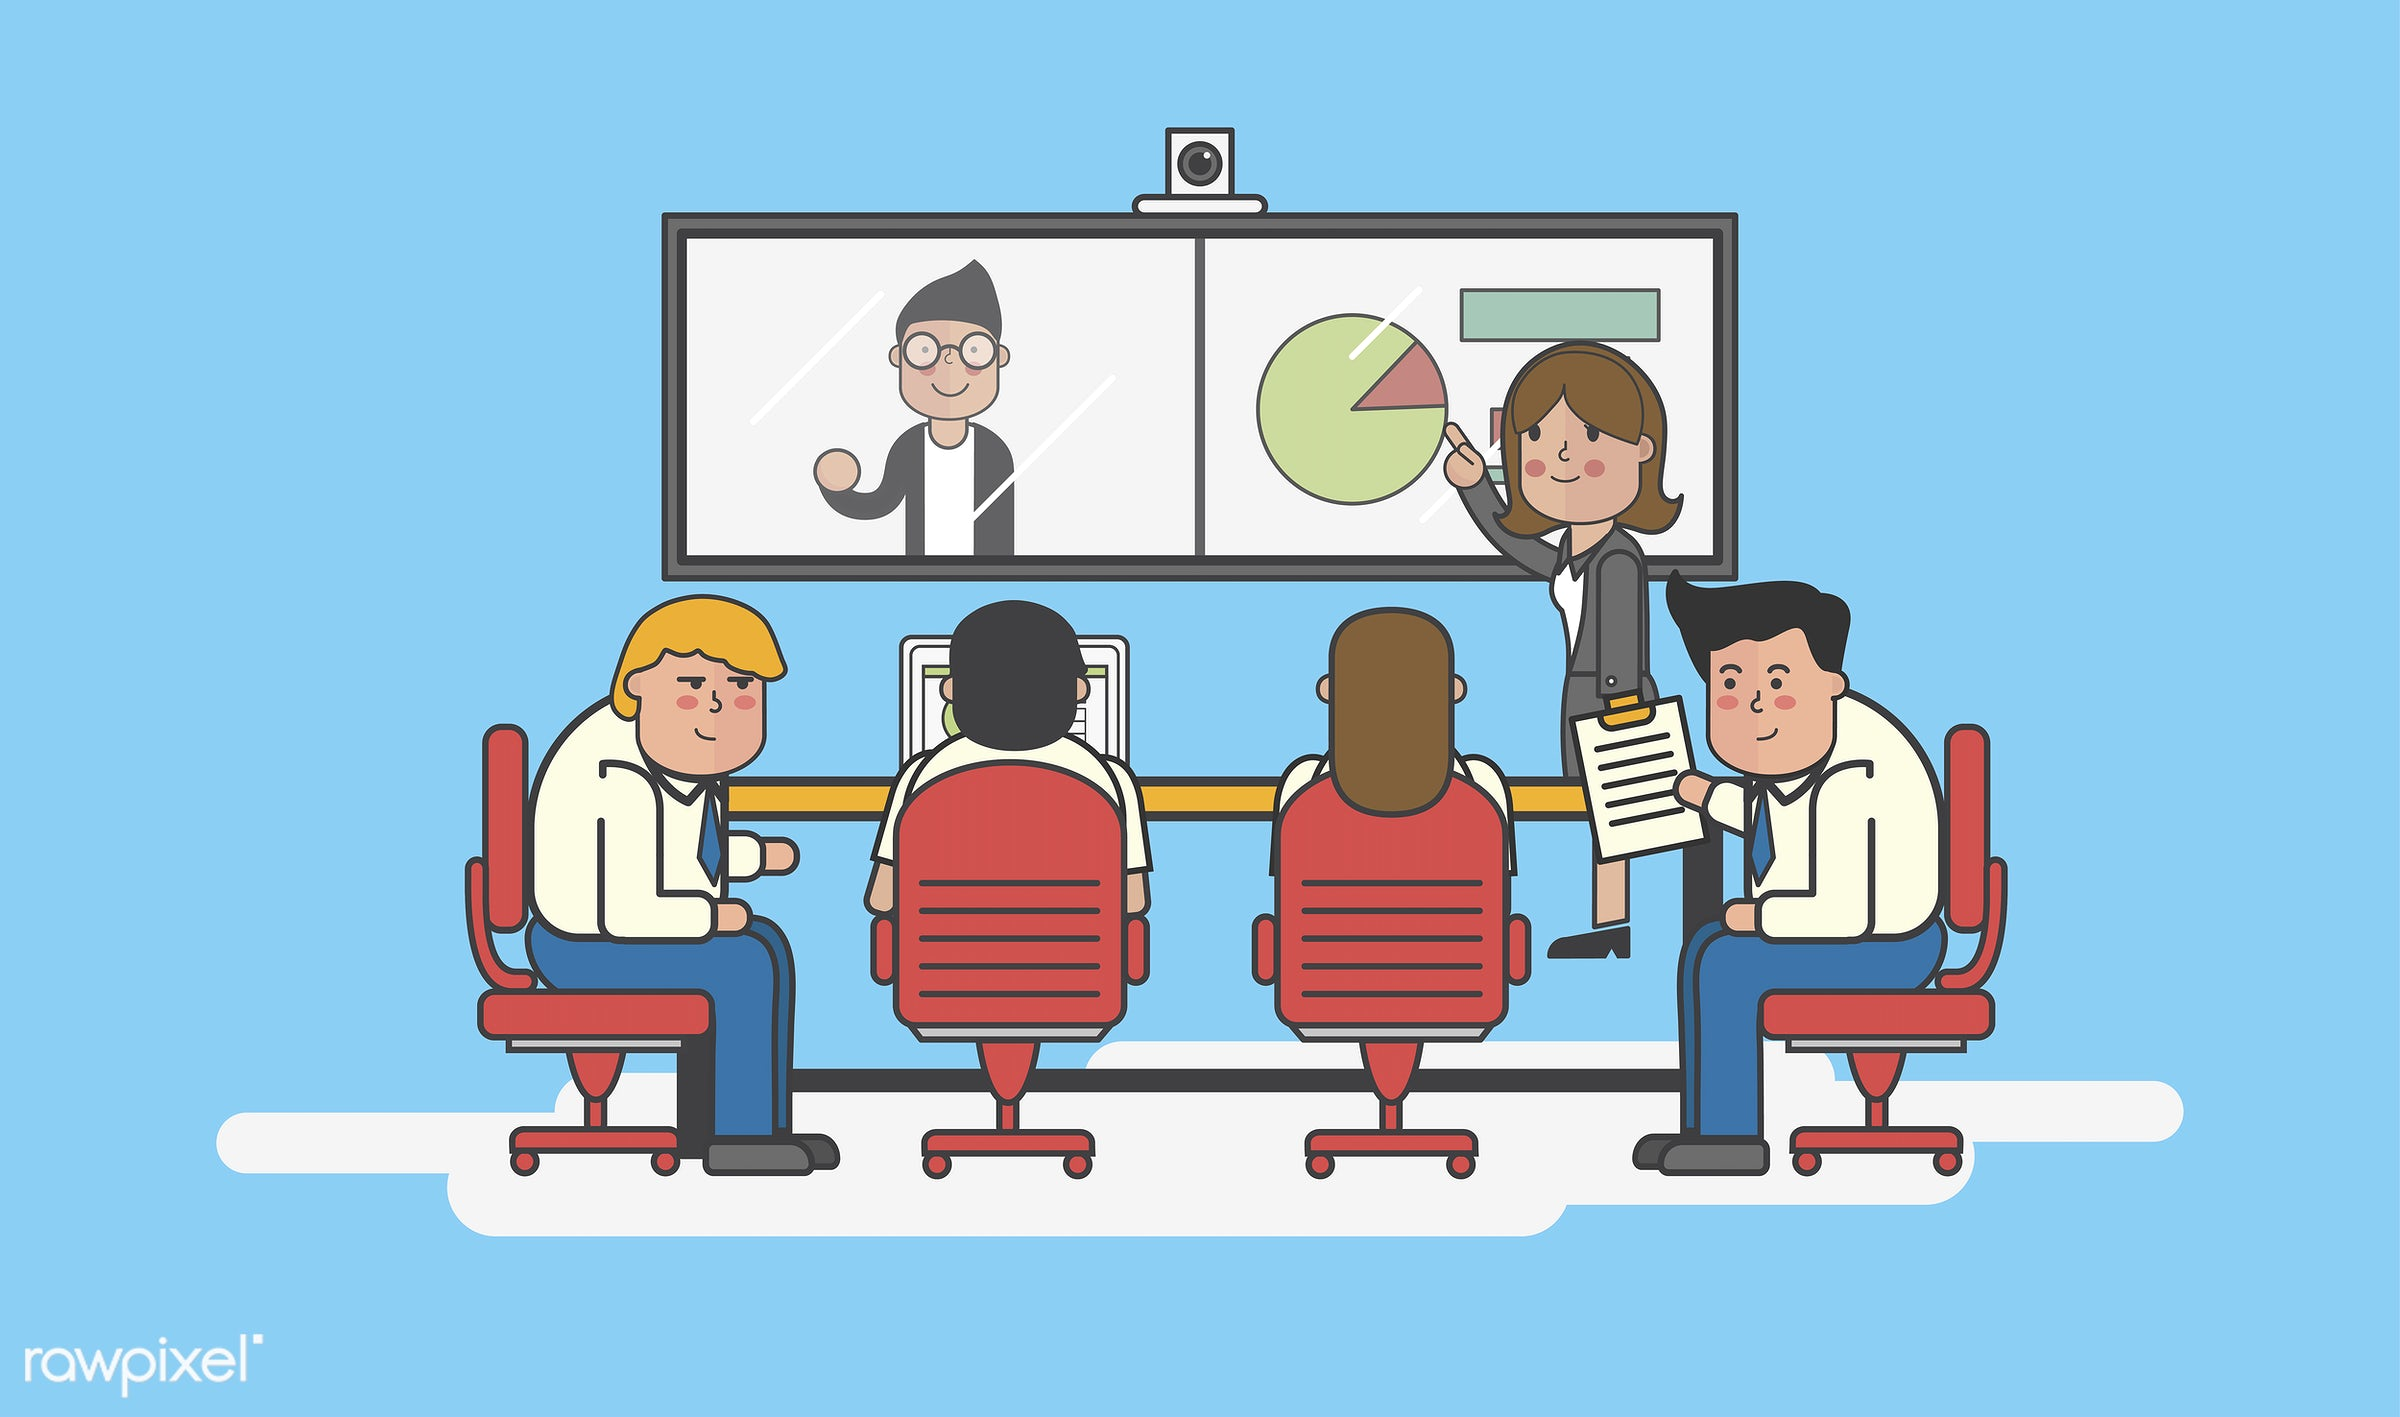 Illustration of business people avatar - training, analysis, artwork, avatar, business, cartoon, character, conference,...